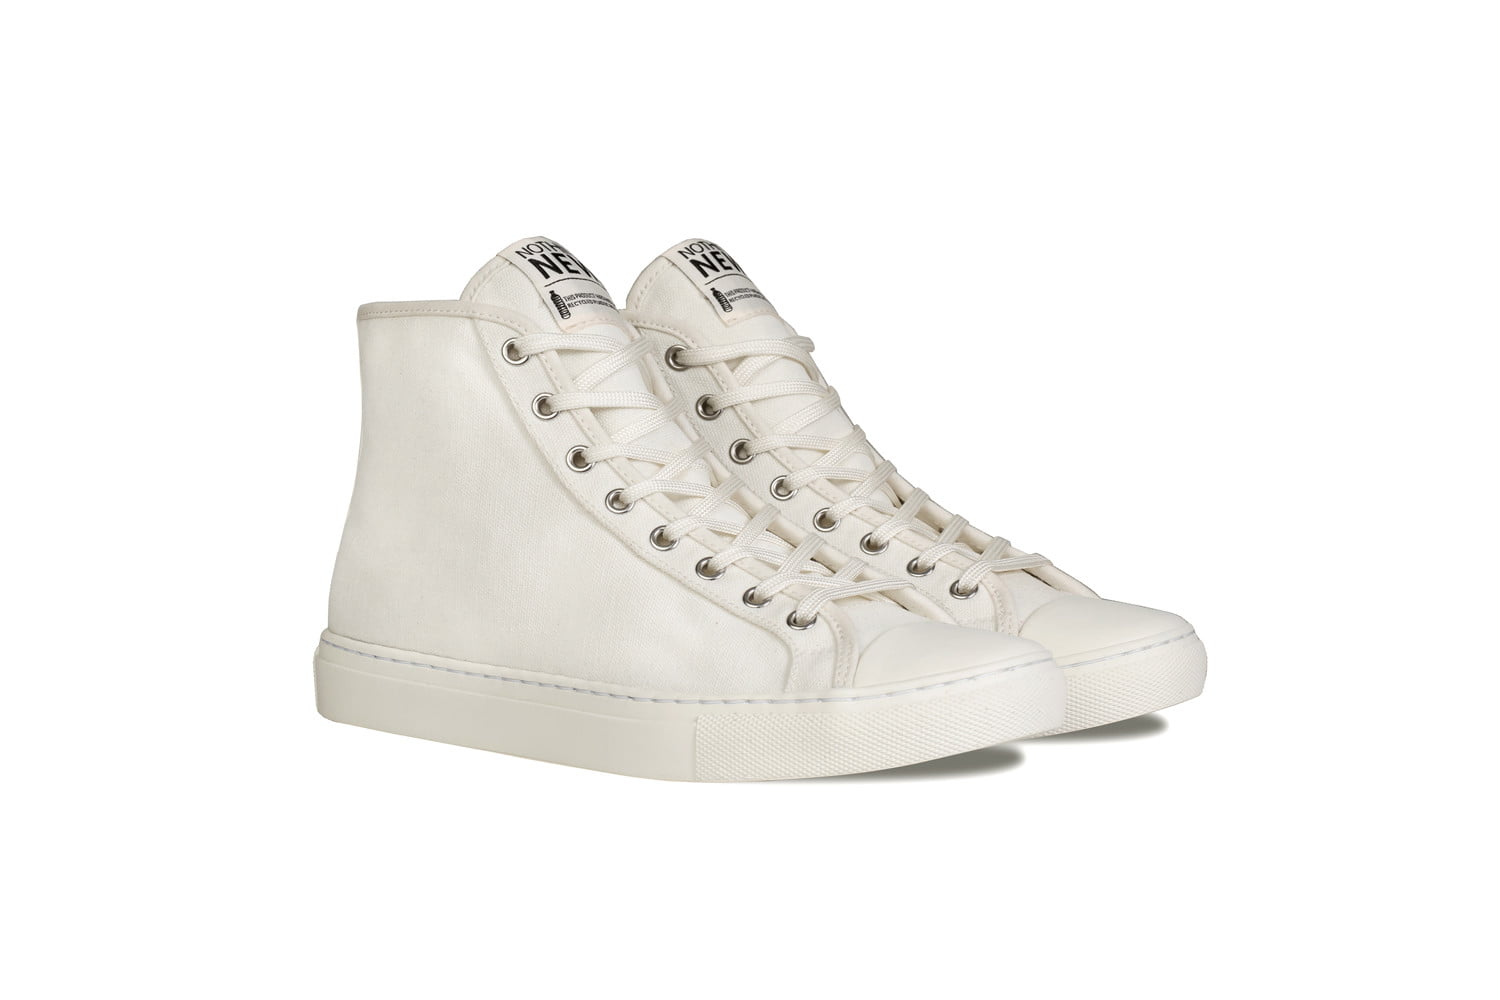 nothing new sustainable sneakers shoes offwhite high top